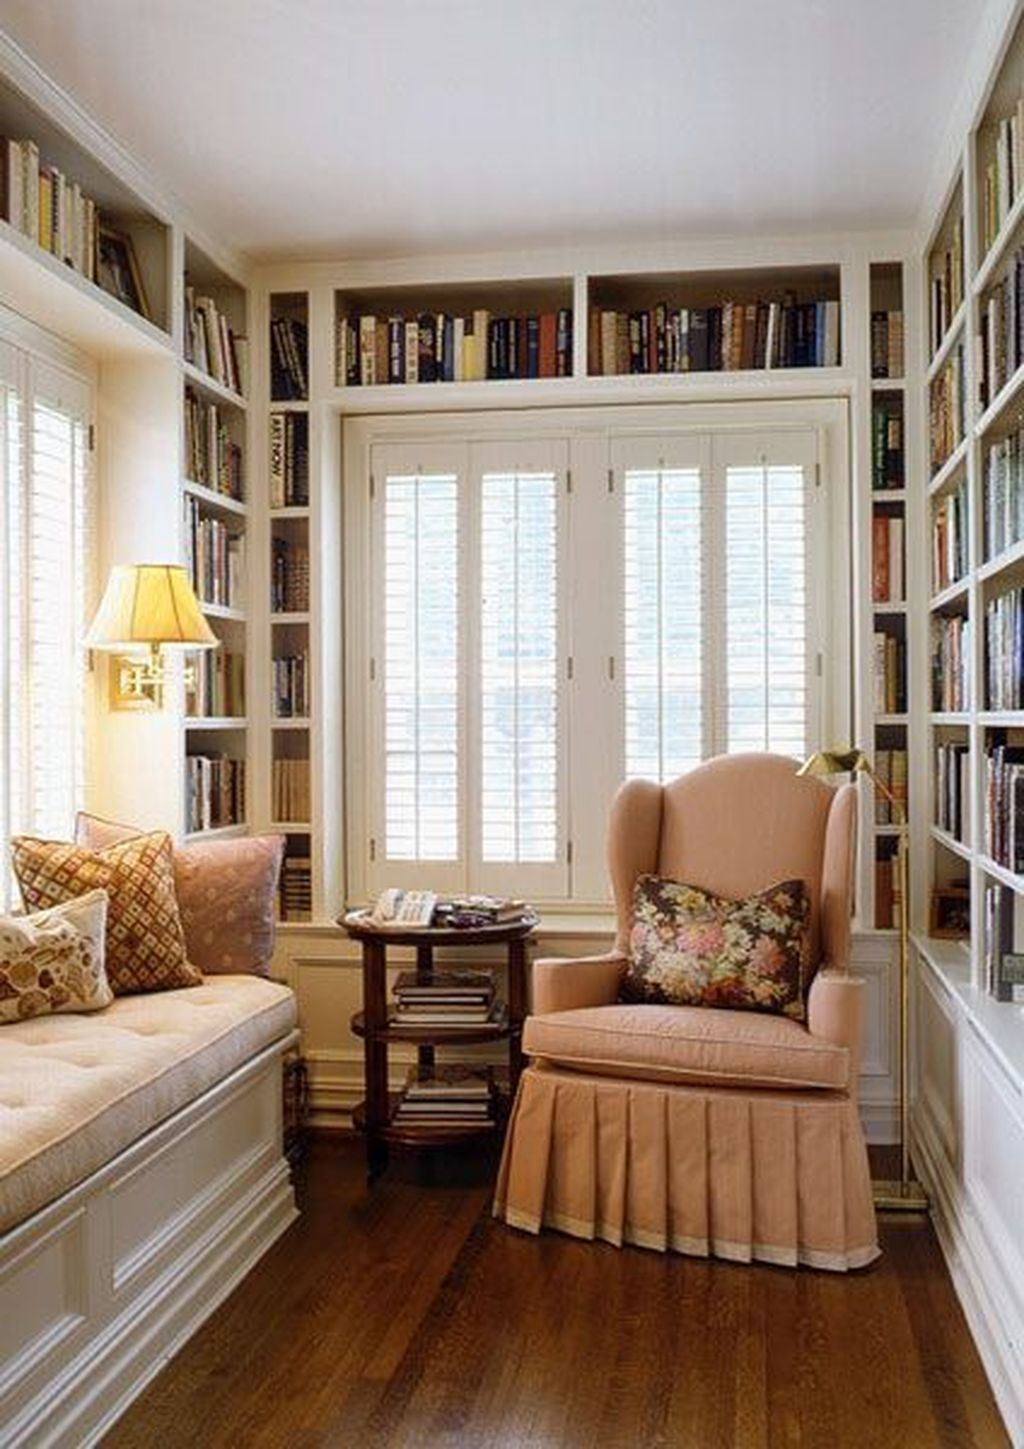 Cozy Reading Room Design Ideas: 30+ Inspiring Reading Room Decoration Ideas To Make You